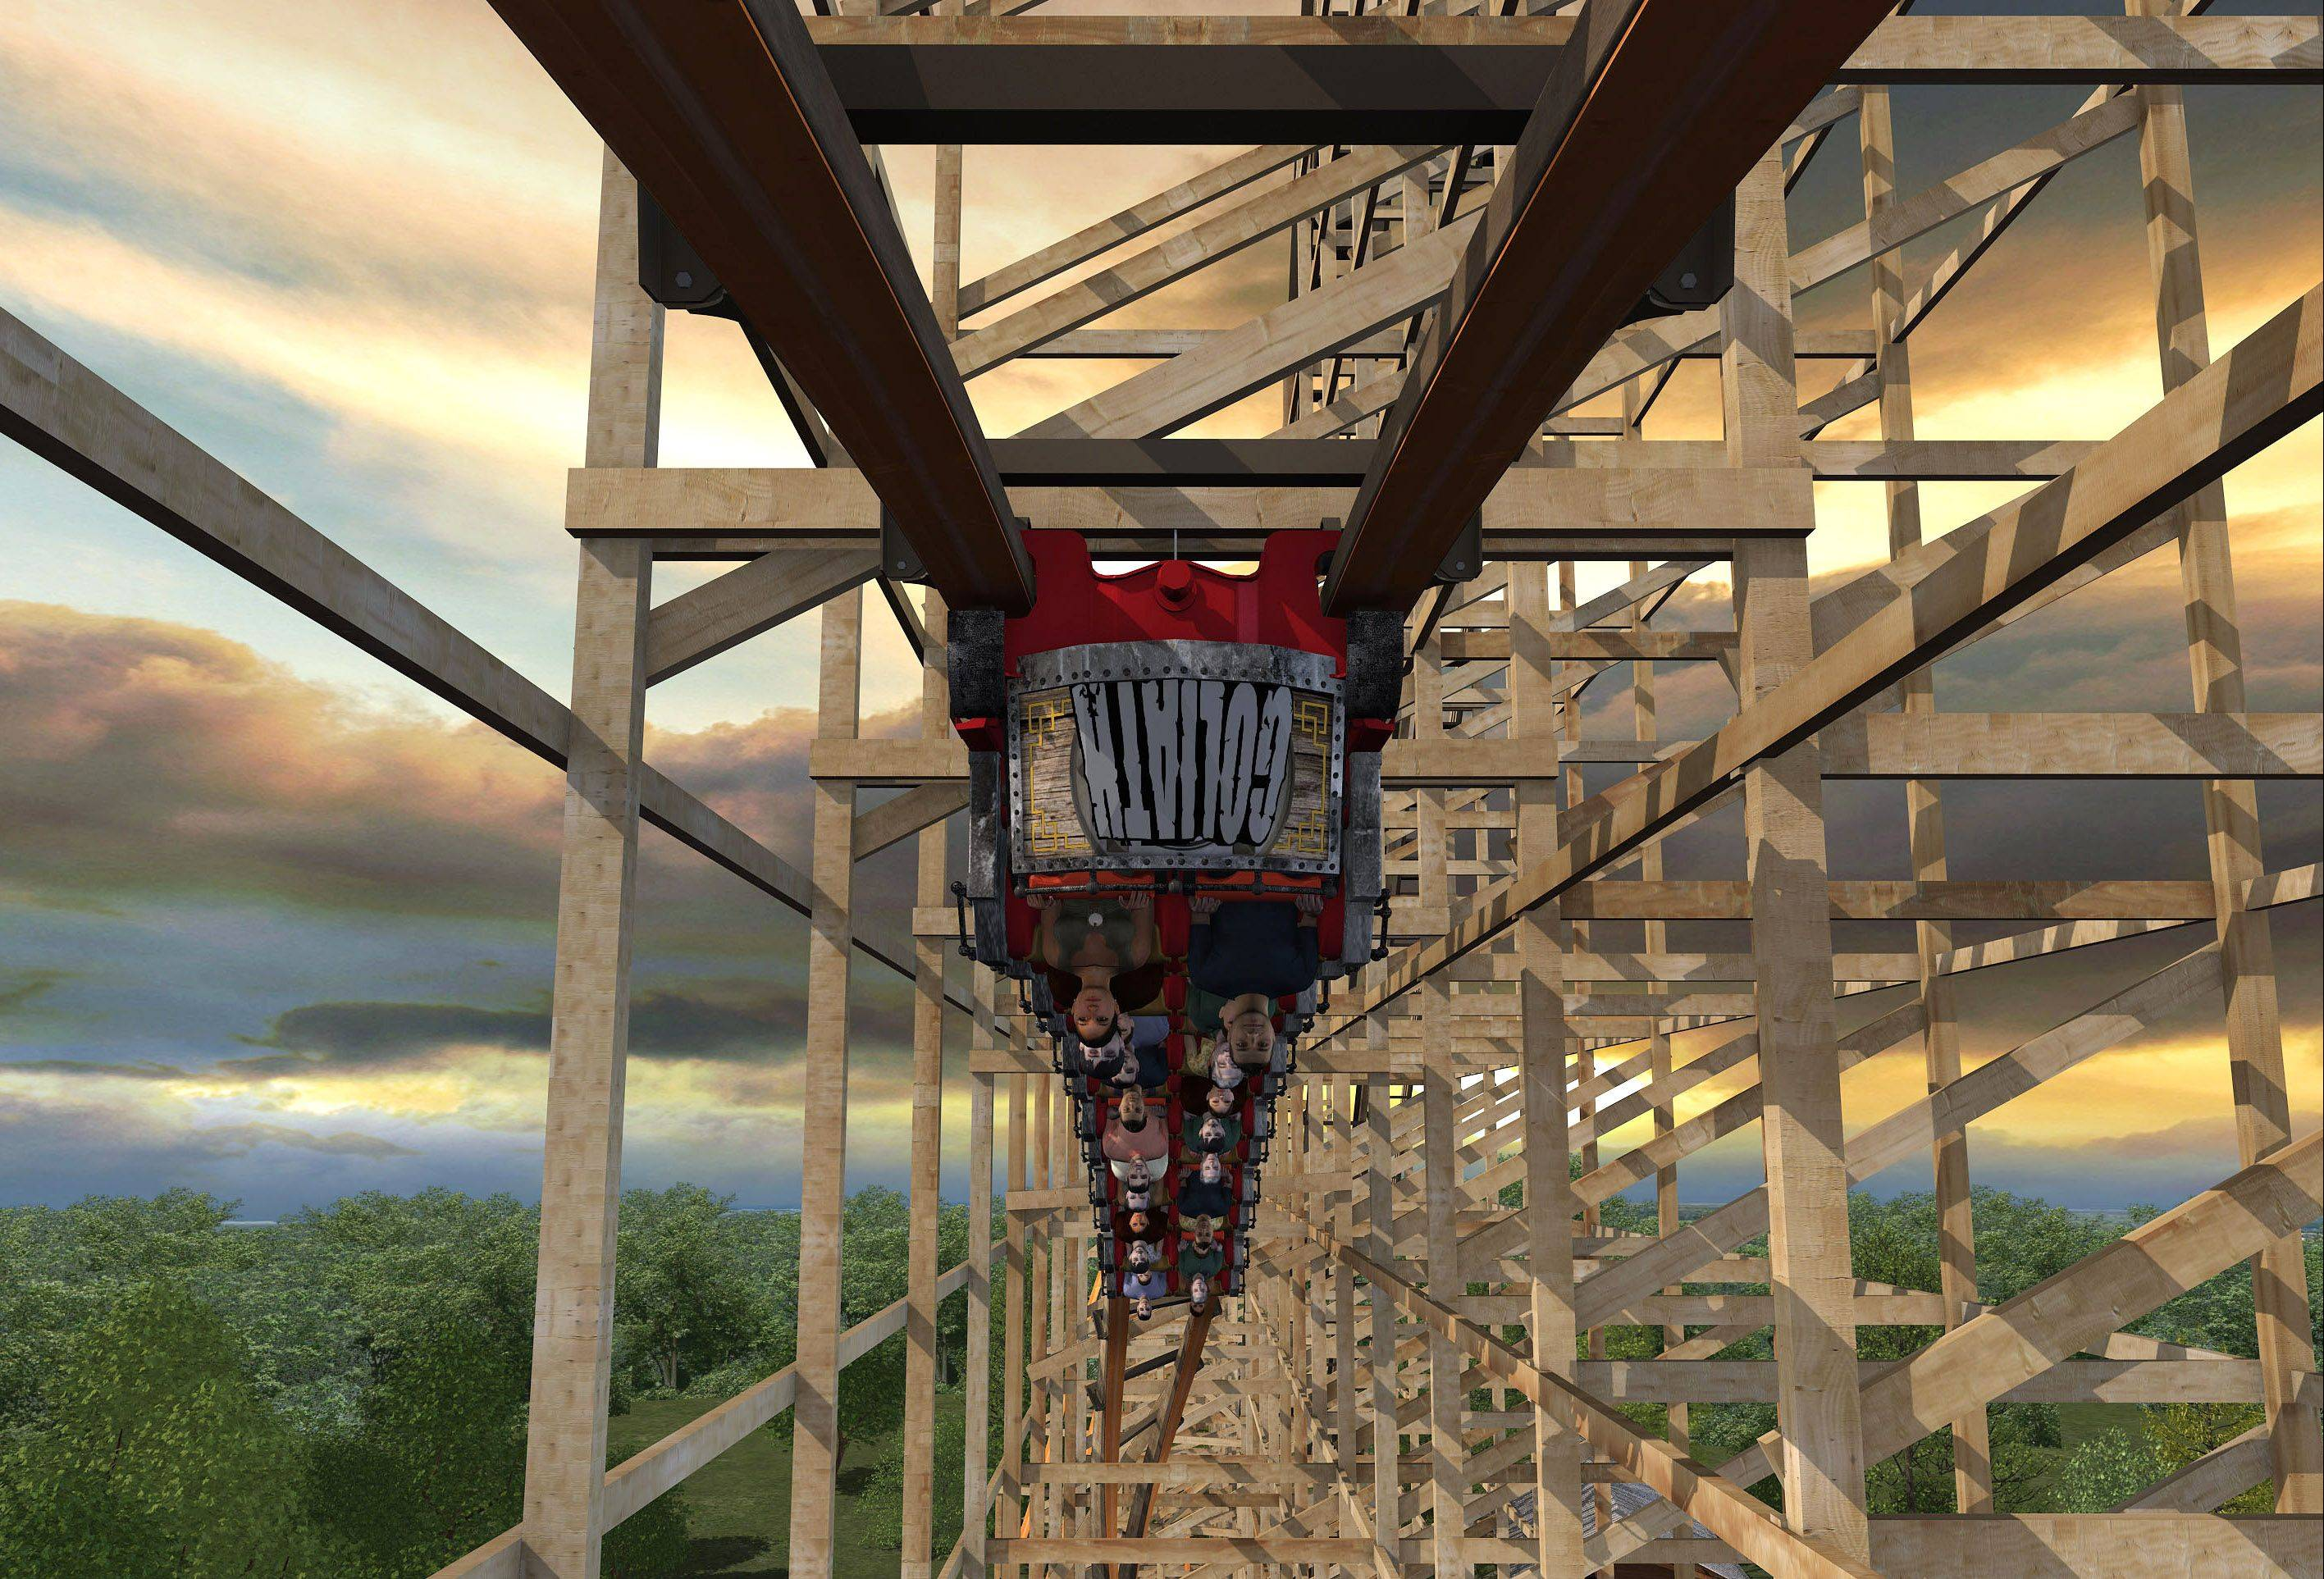 Riders will go upside down on the new Goliath wooden roller coaster planned for Six Flags Great America in Gurnee.